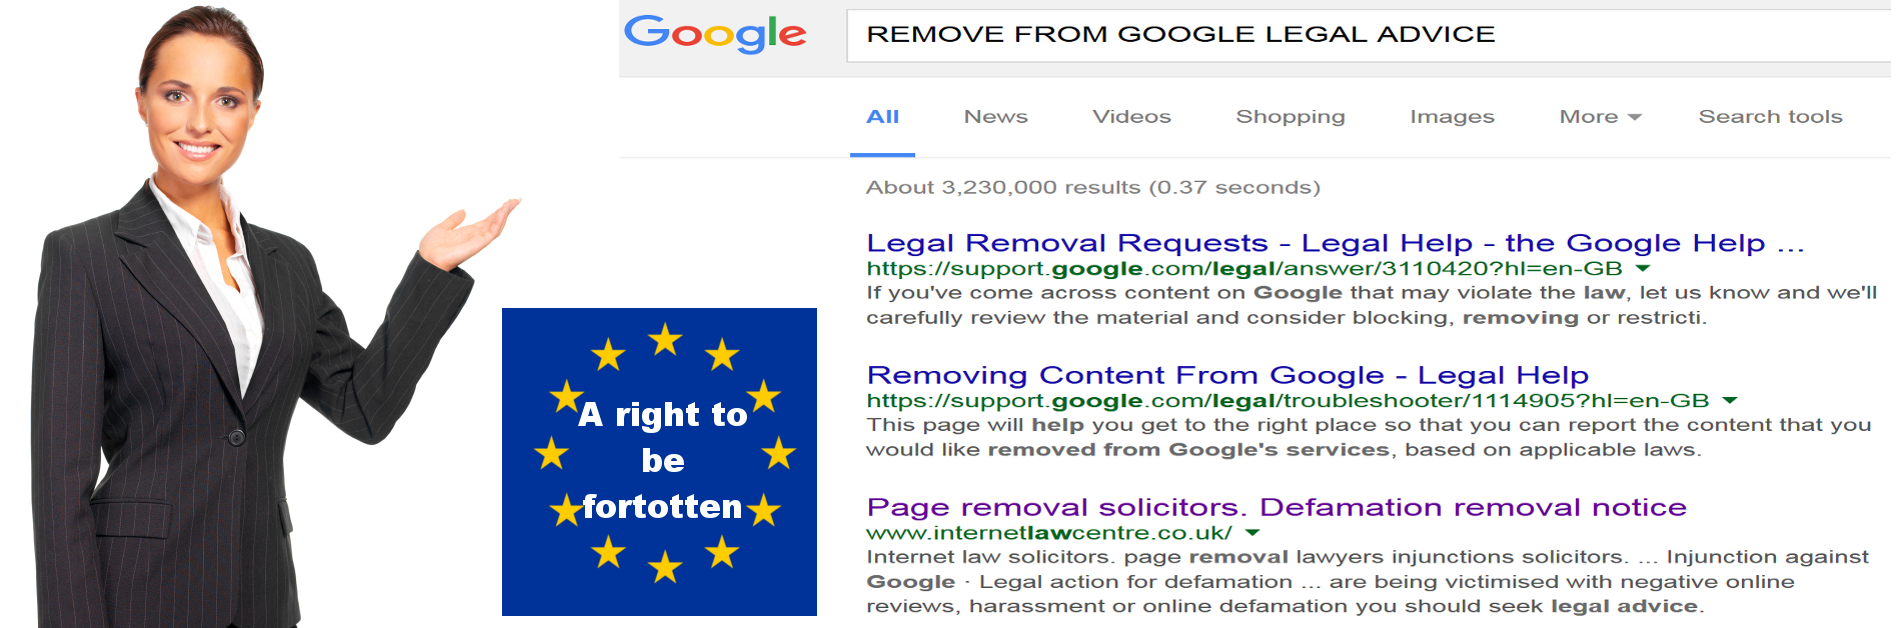 Remove from Google ICO right to be forgotten solicitor